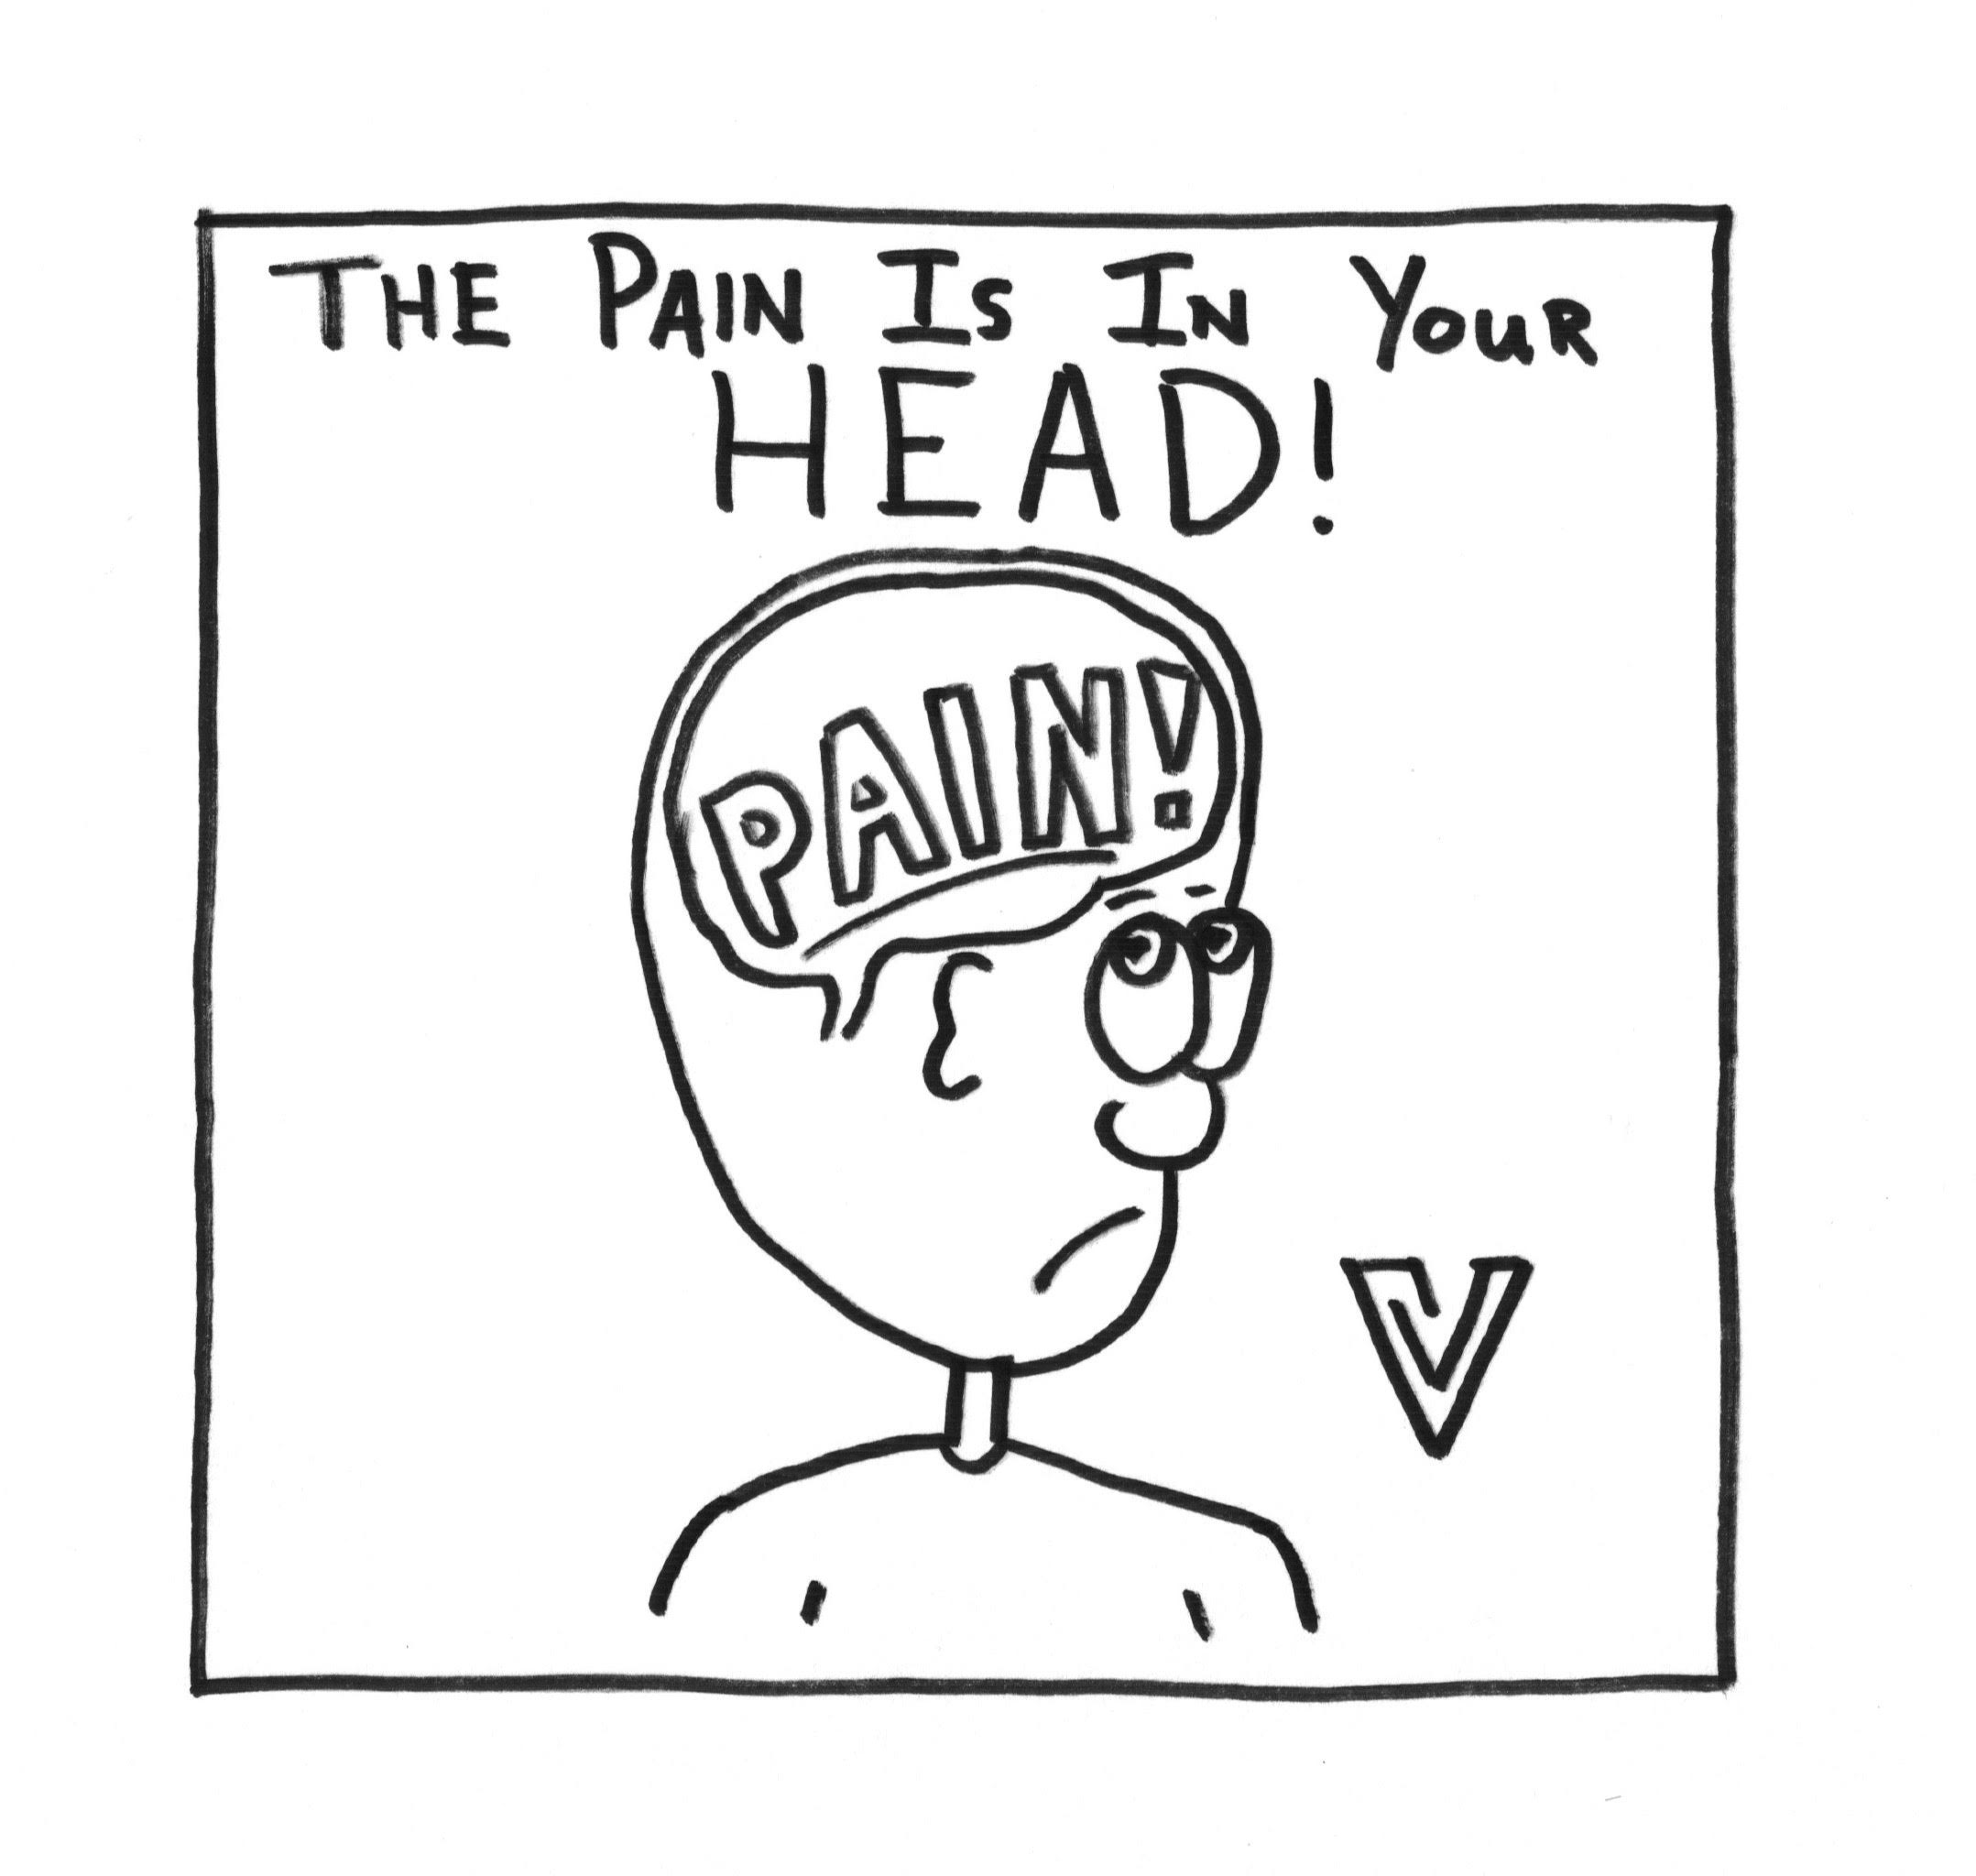 The Pain is in Your Head!